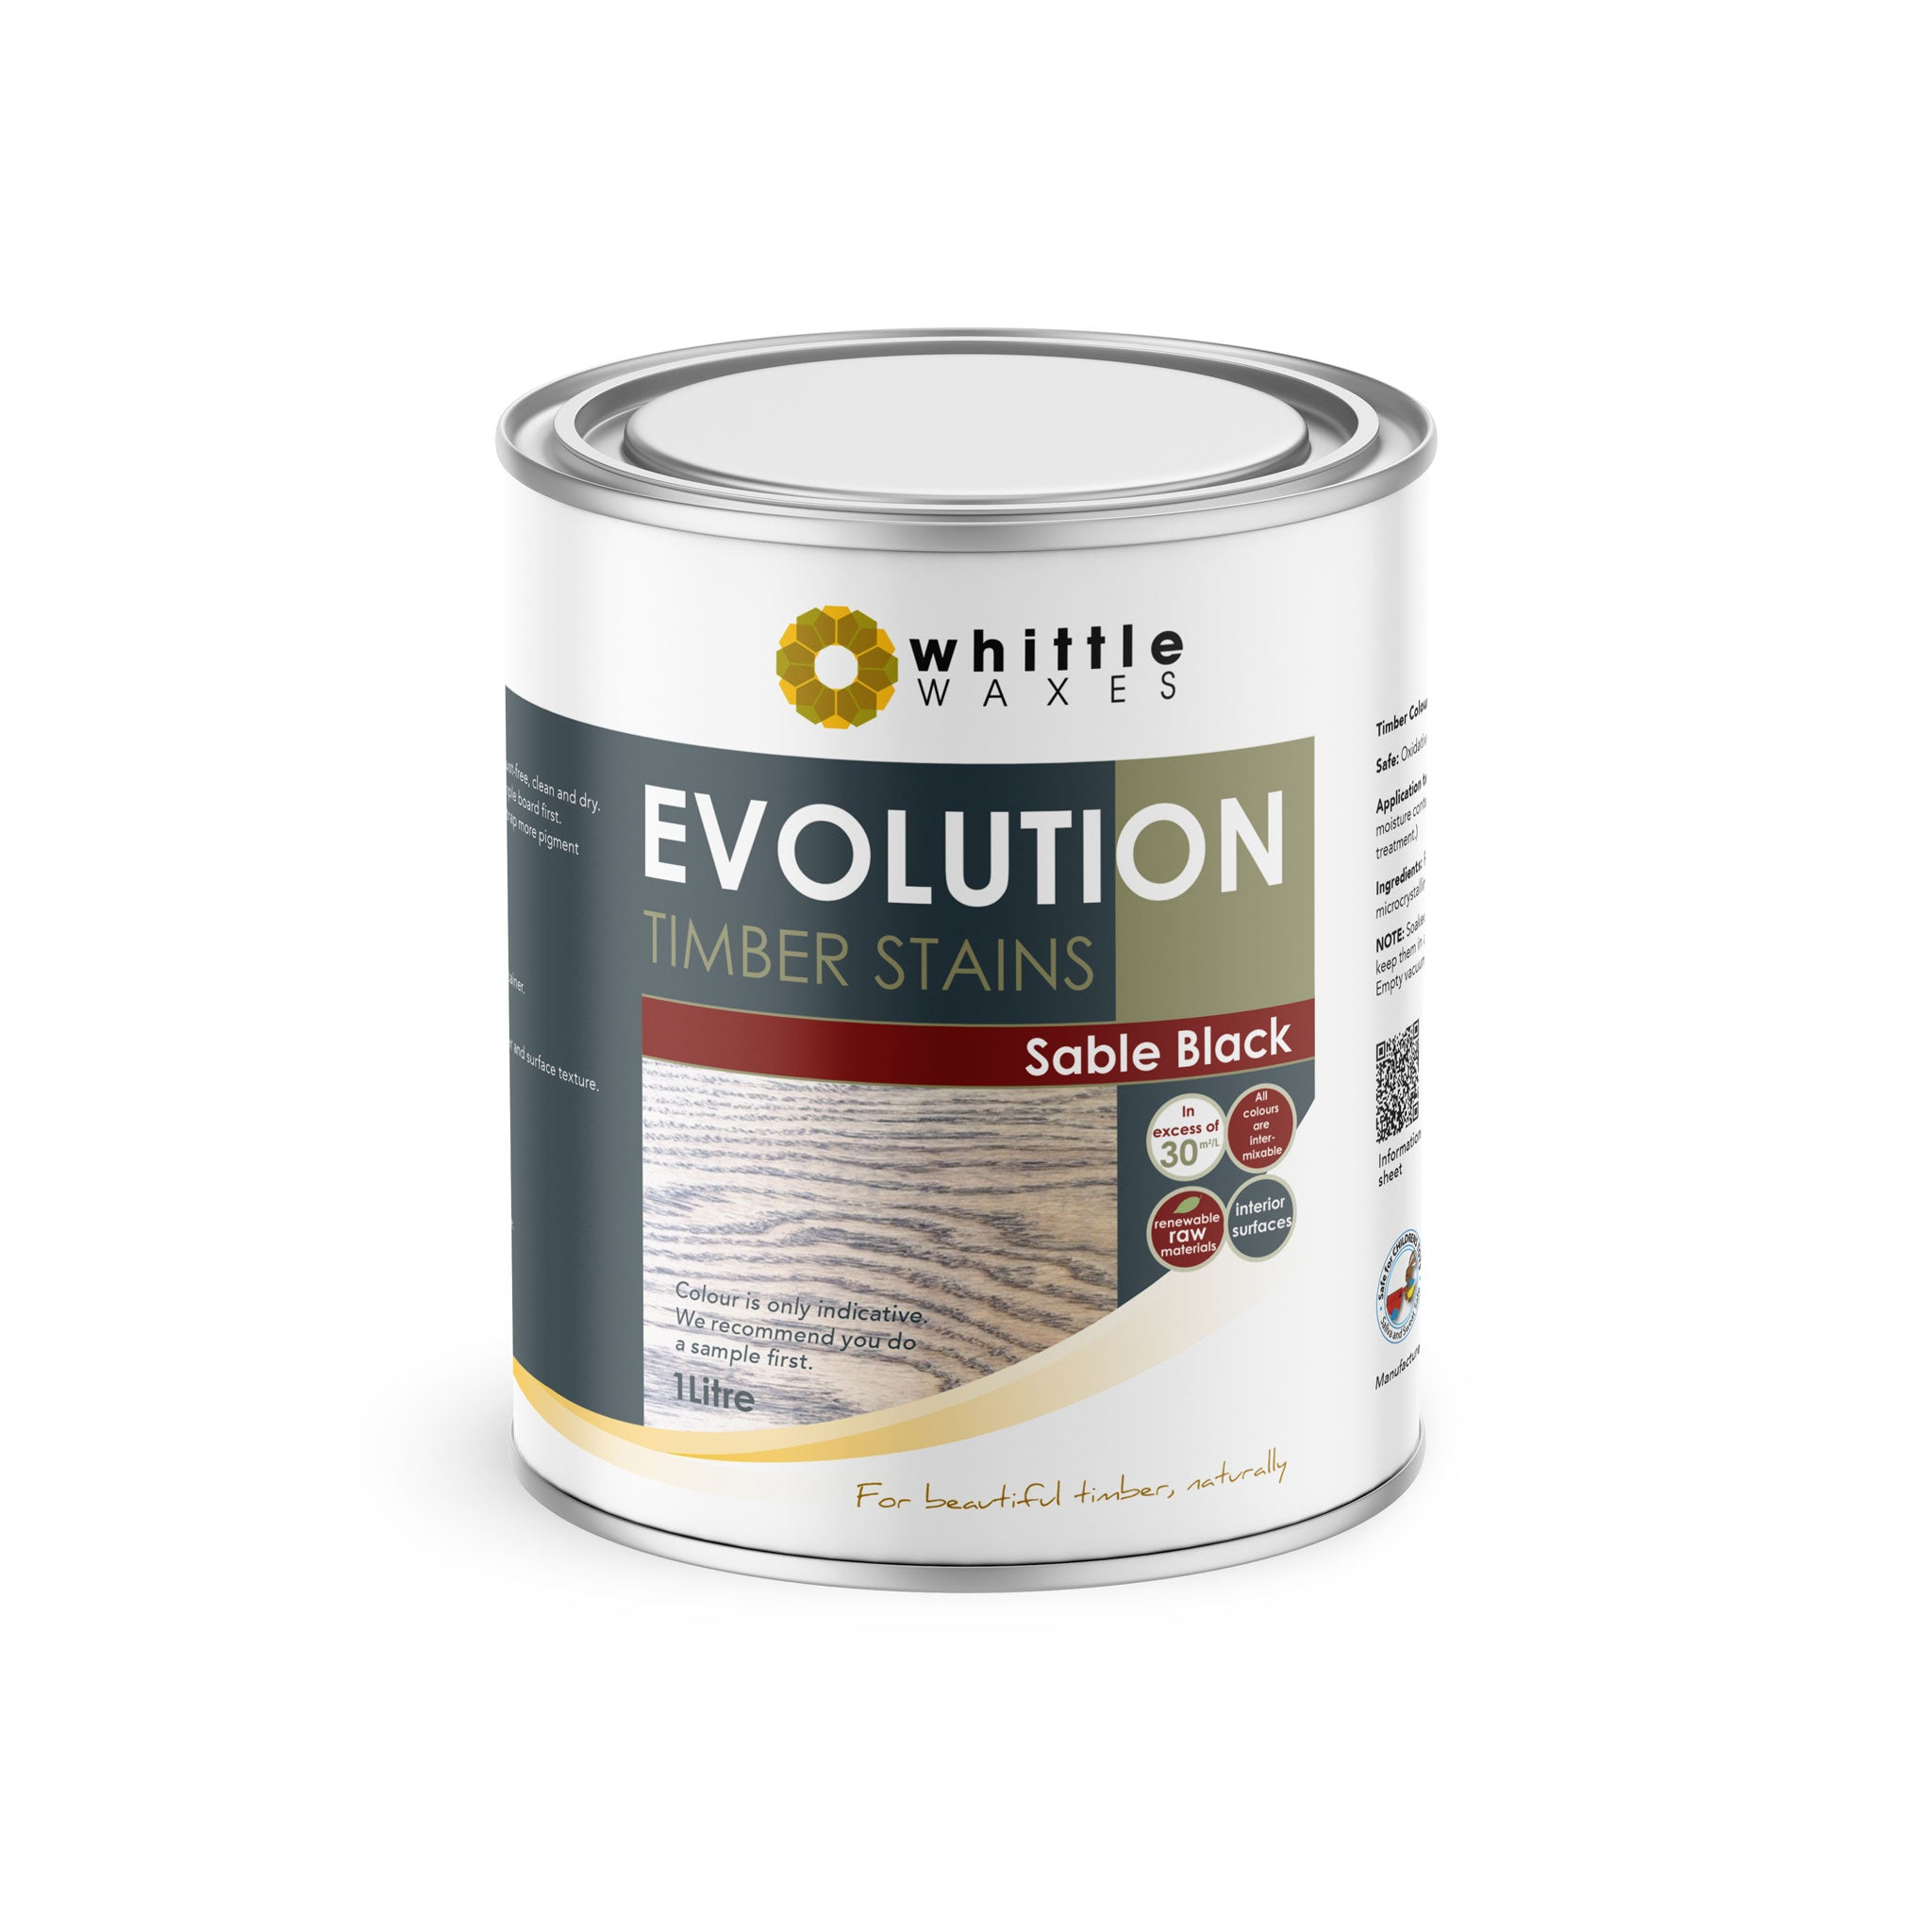 Whittle Waxes Evolution Colours (Sable Black) - quality timber stain - 1 Litre